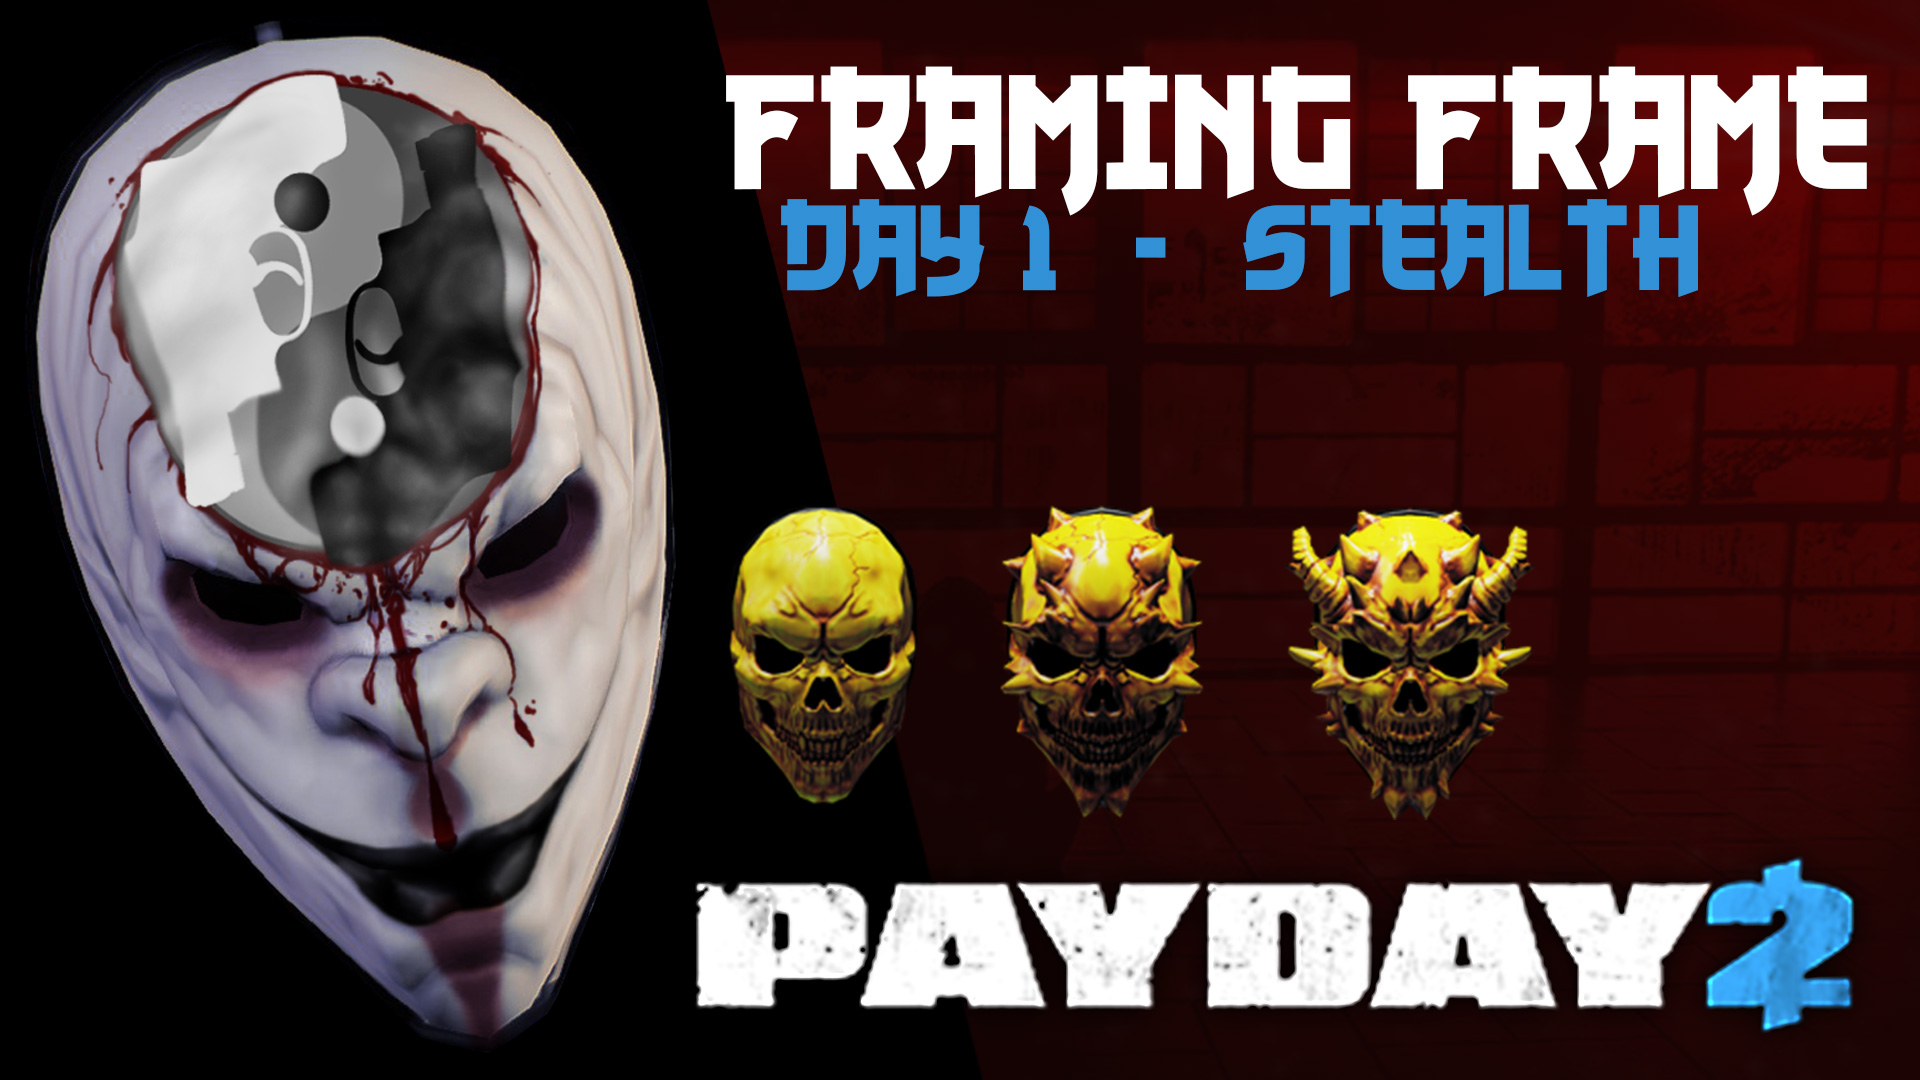 Payday 2: Framing Frame – Day 1 and ESCAPE – Stealth Overkill |